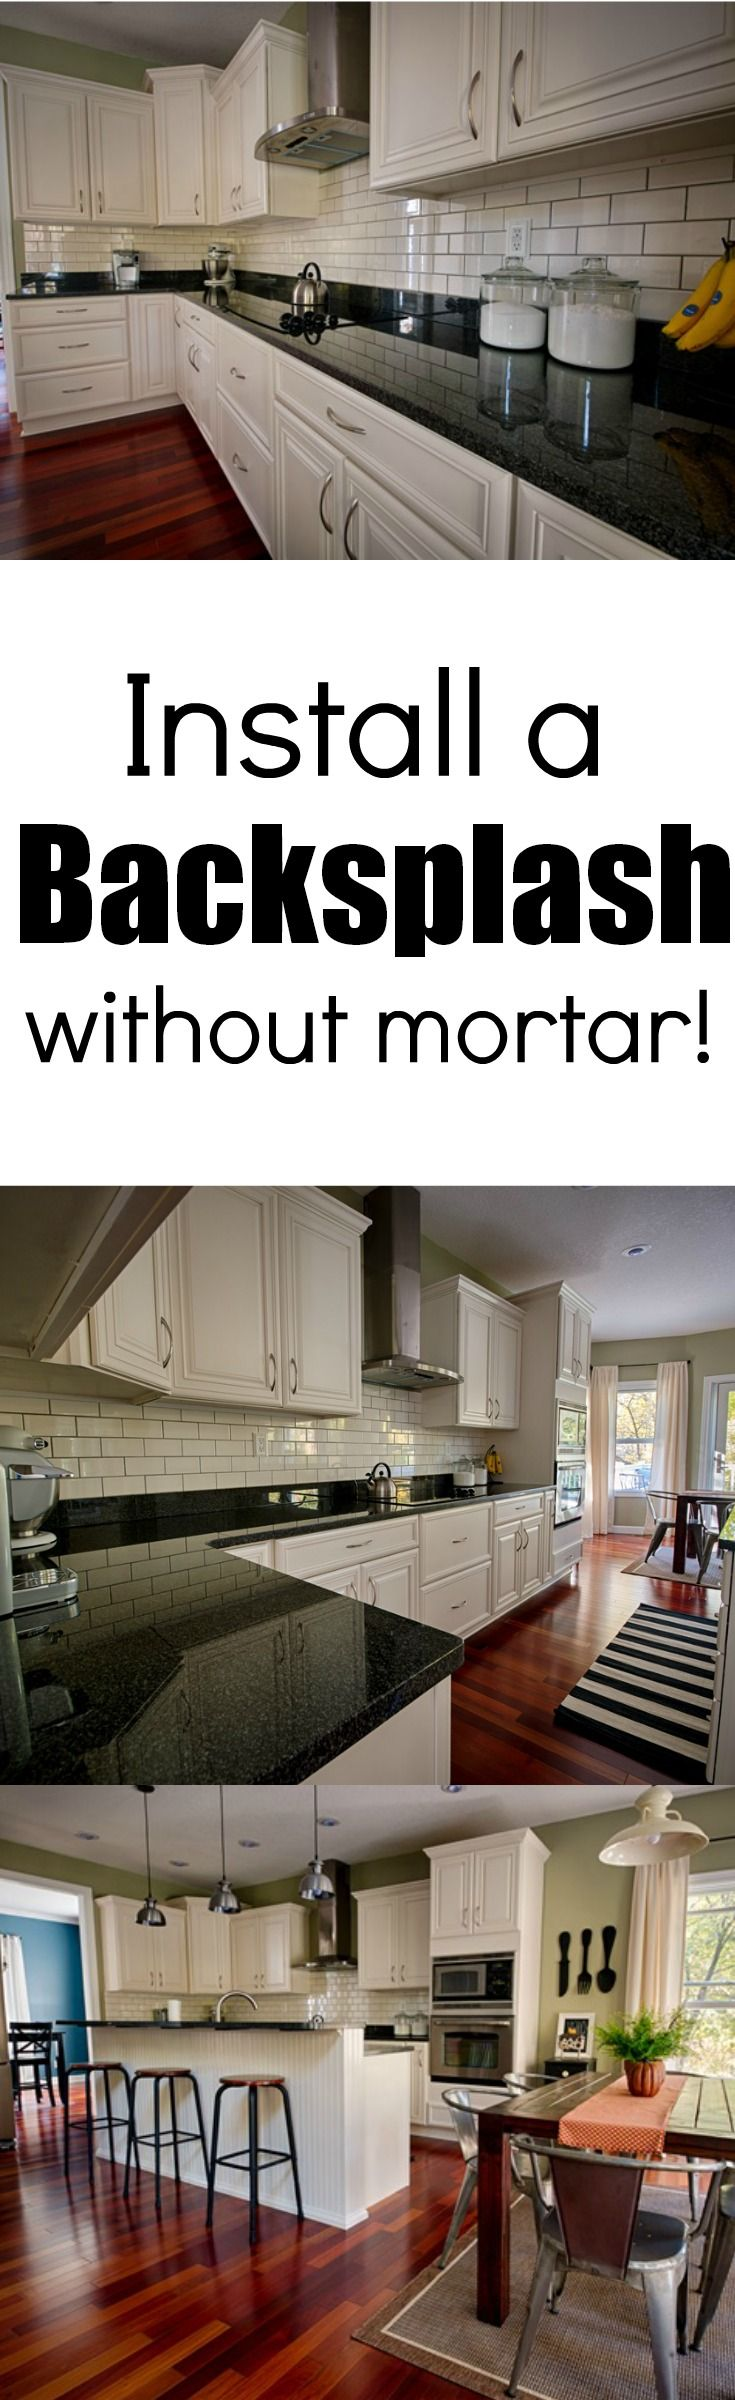 Install a backsplash without mortar!